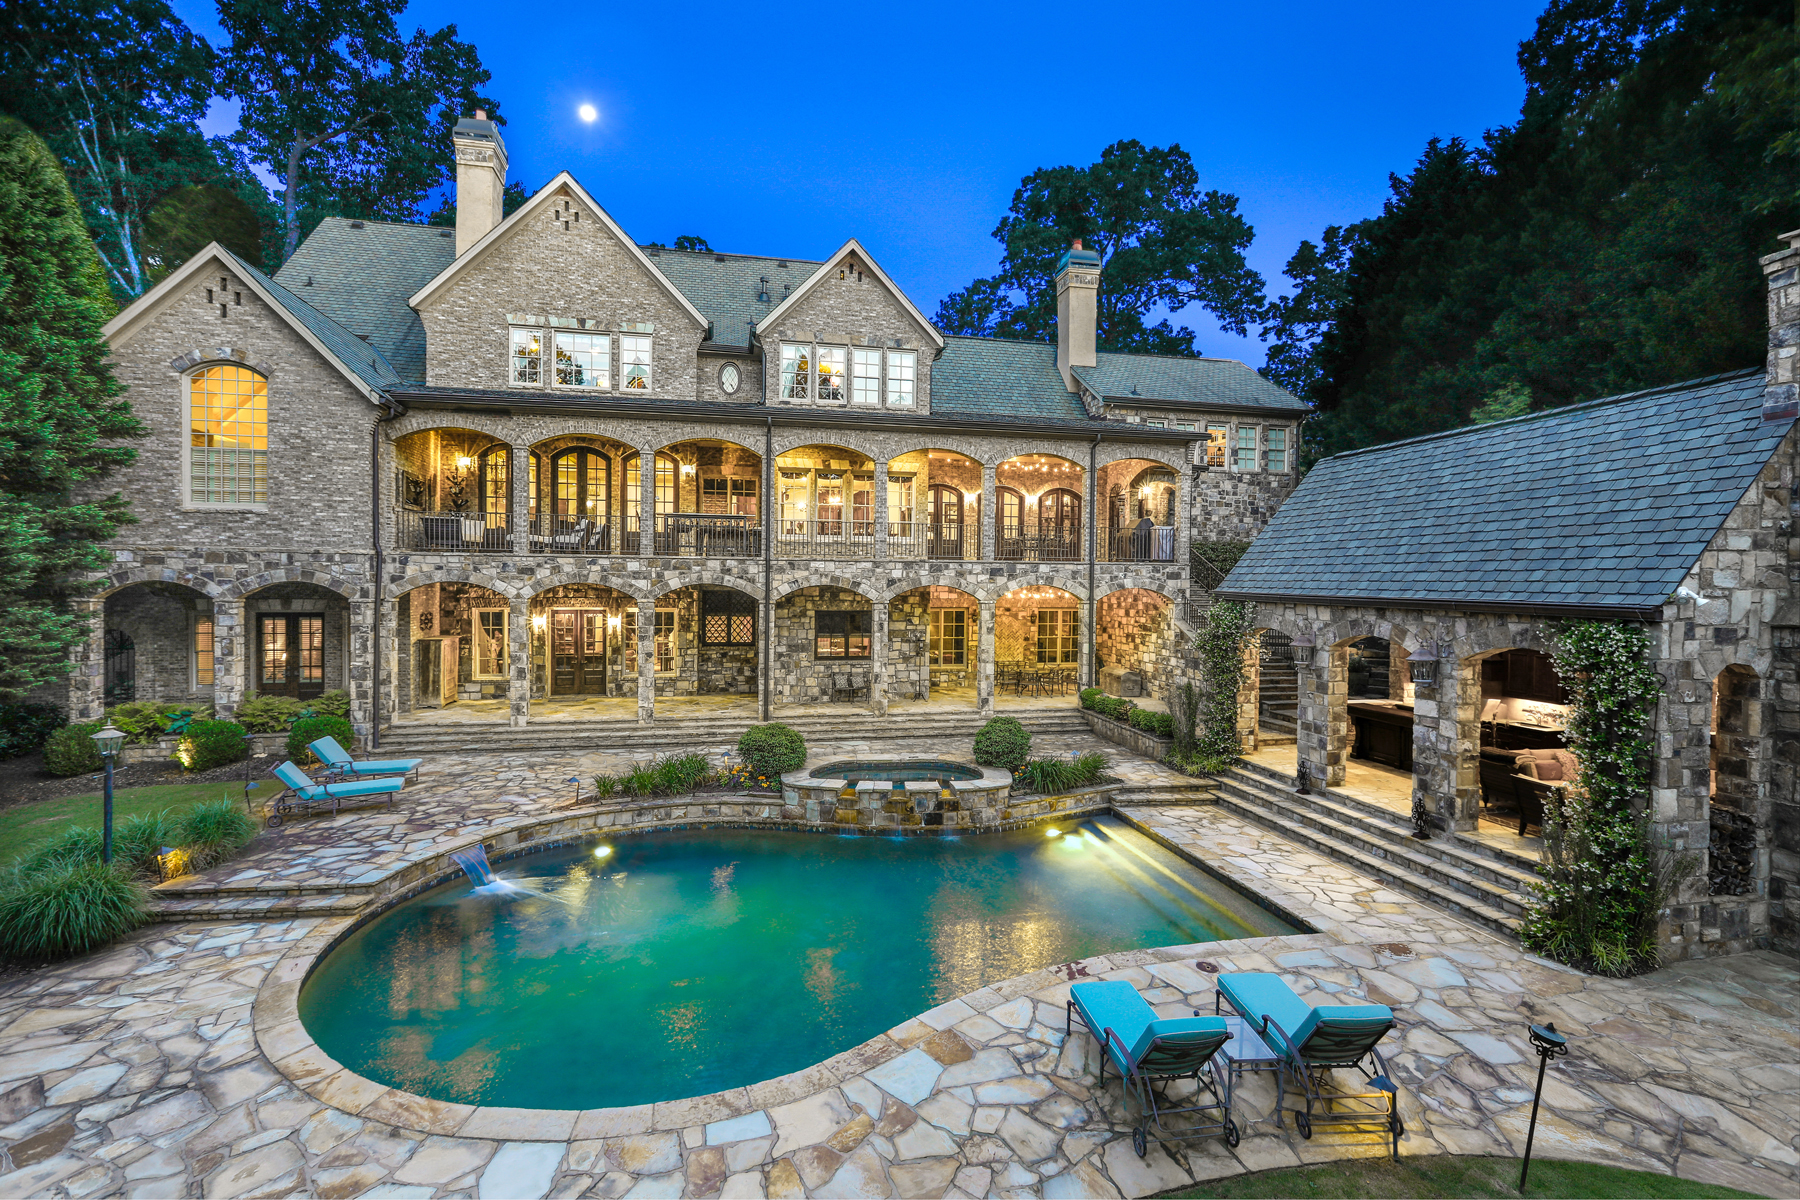 Single Family Homes for Active at Atlanta Country Club Masterpiece on the 15th Hole 250 Pine Valley Road SE Marietta, Georgia 30067 United States